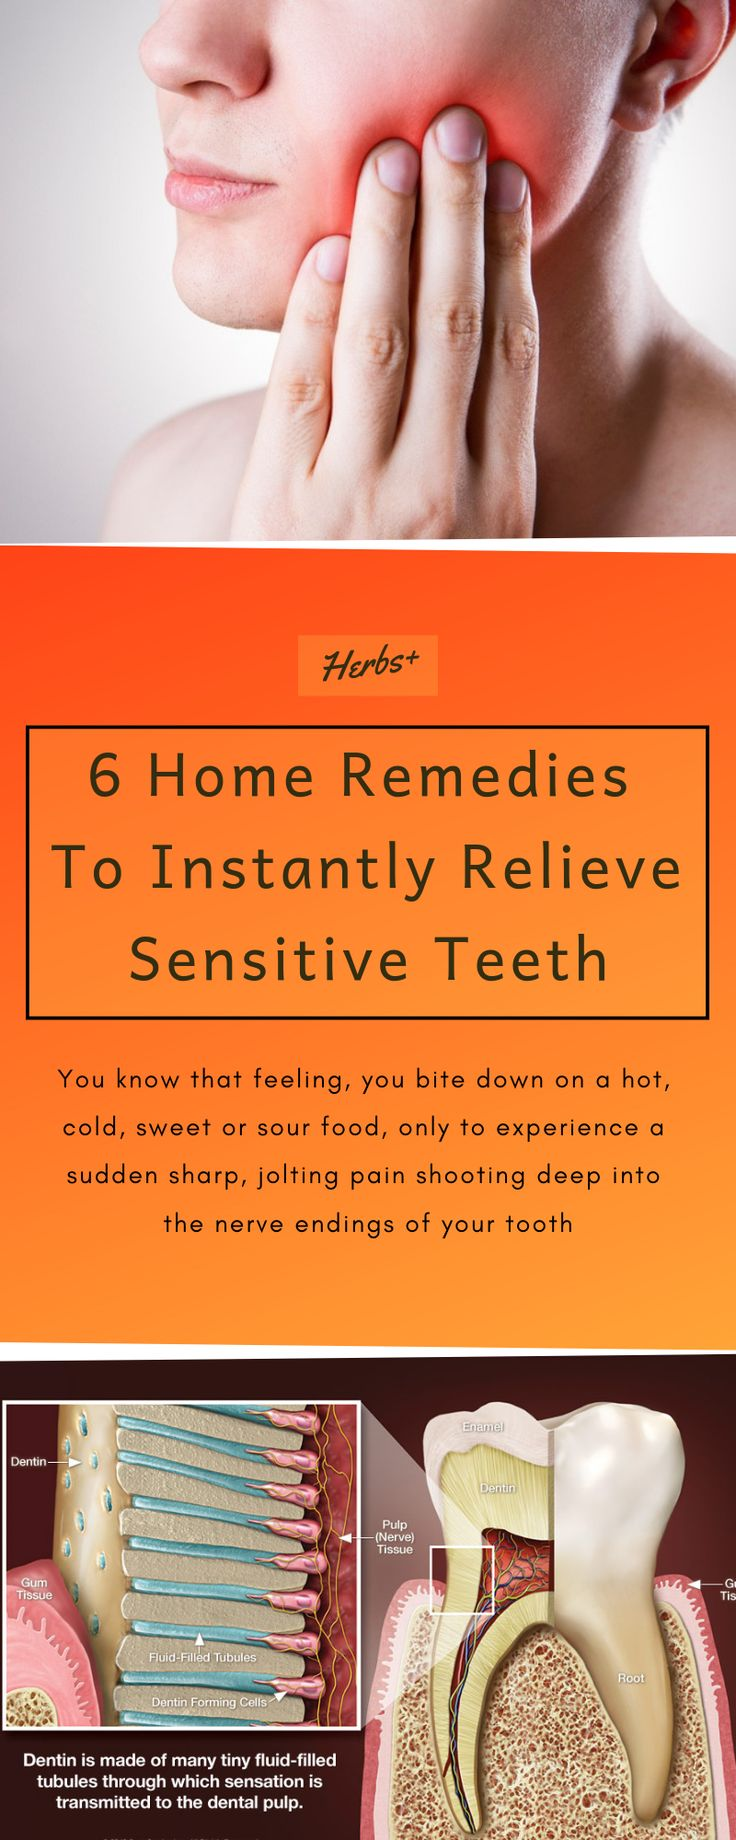 is there any way to reverse periodontal disease